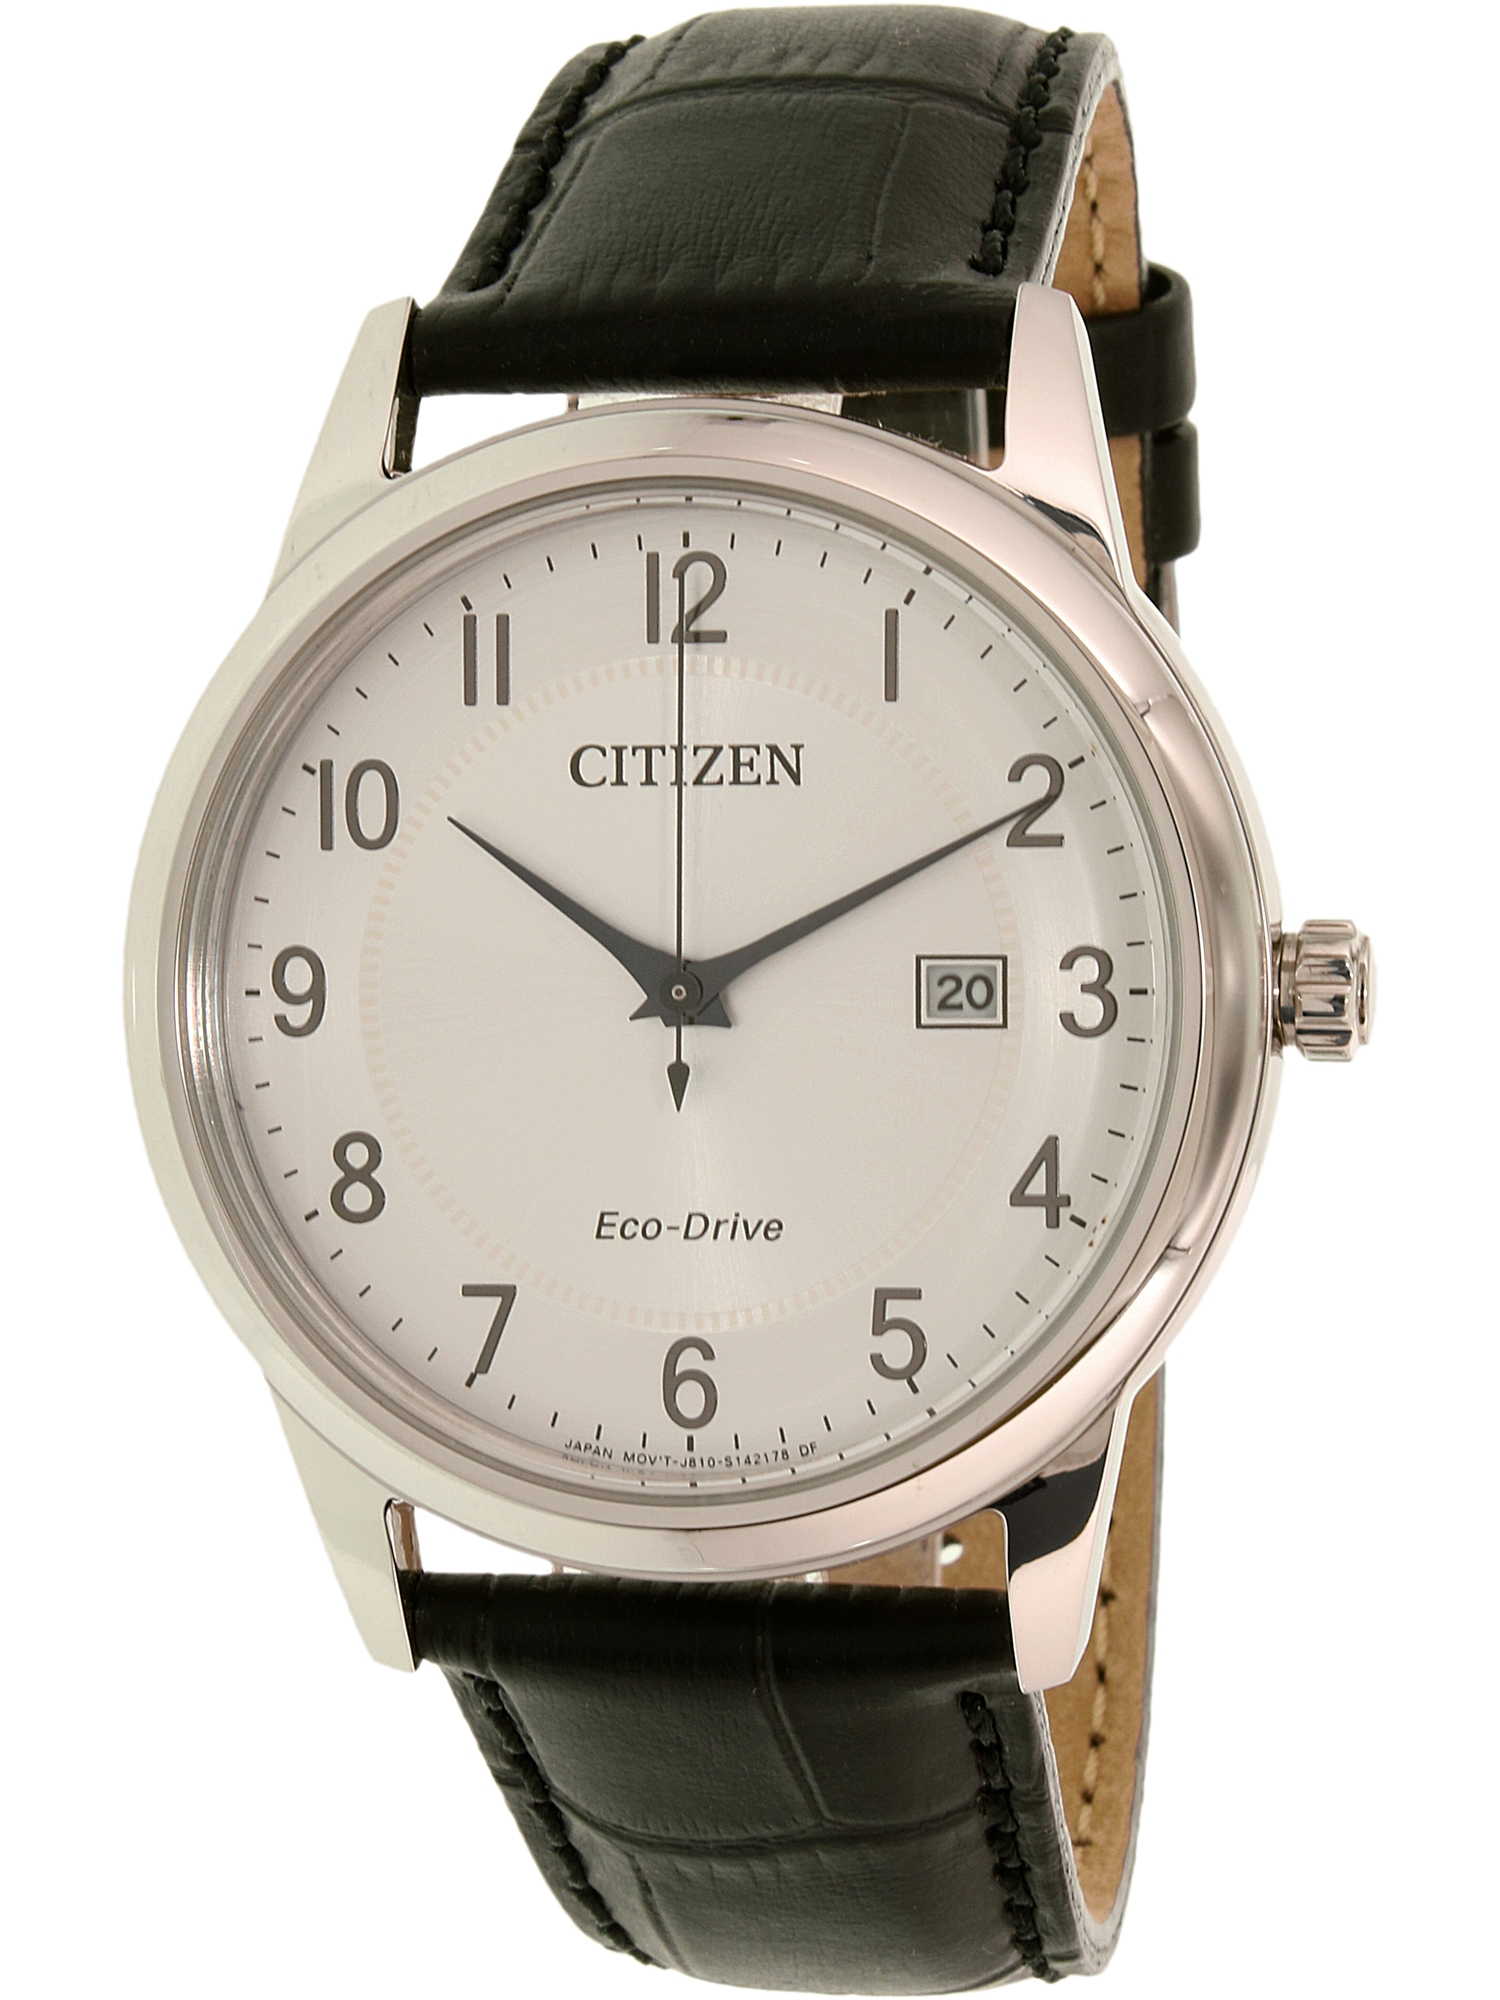 Men's Eco-Drive AW1231-07A Black Leather Dress Watch